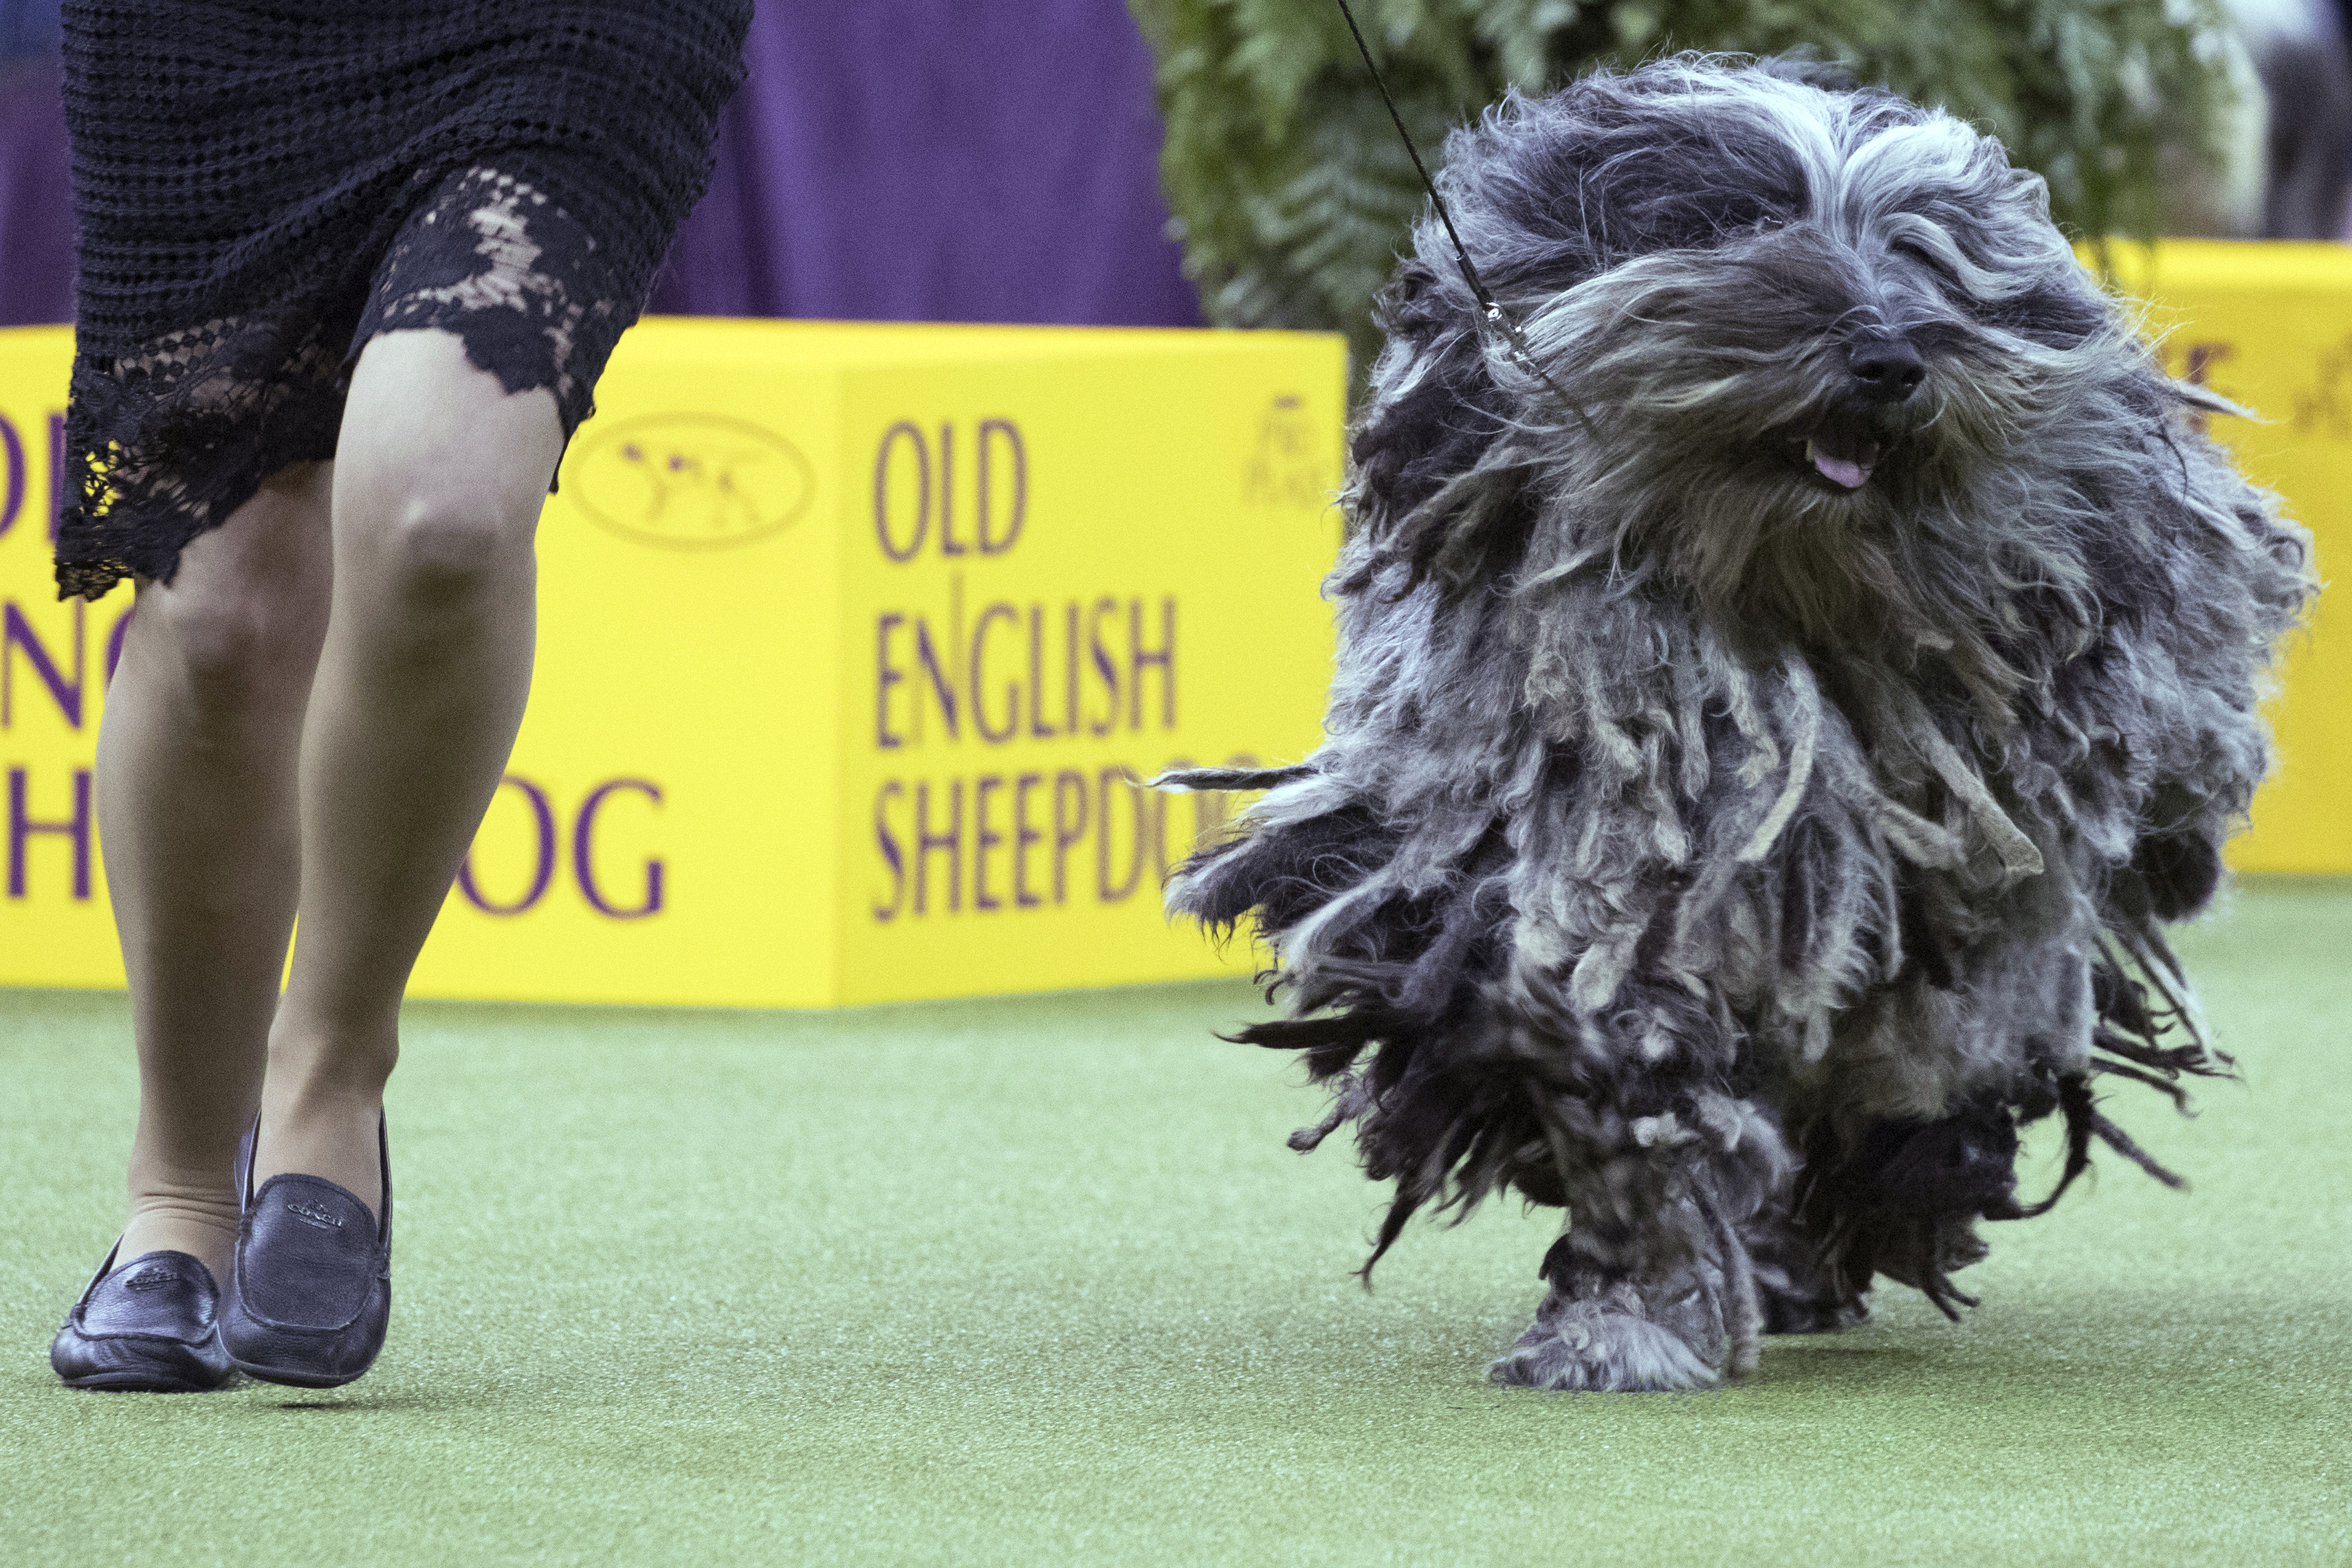 Photo gallery: The scene at the Westminster Dog Show